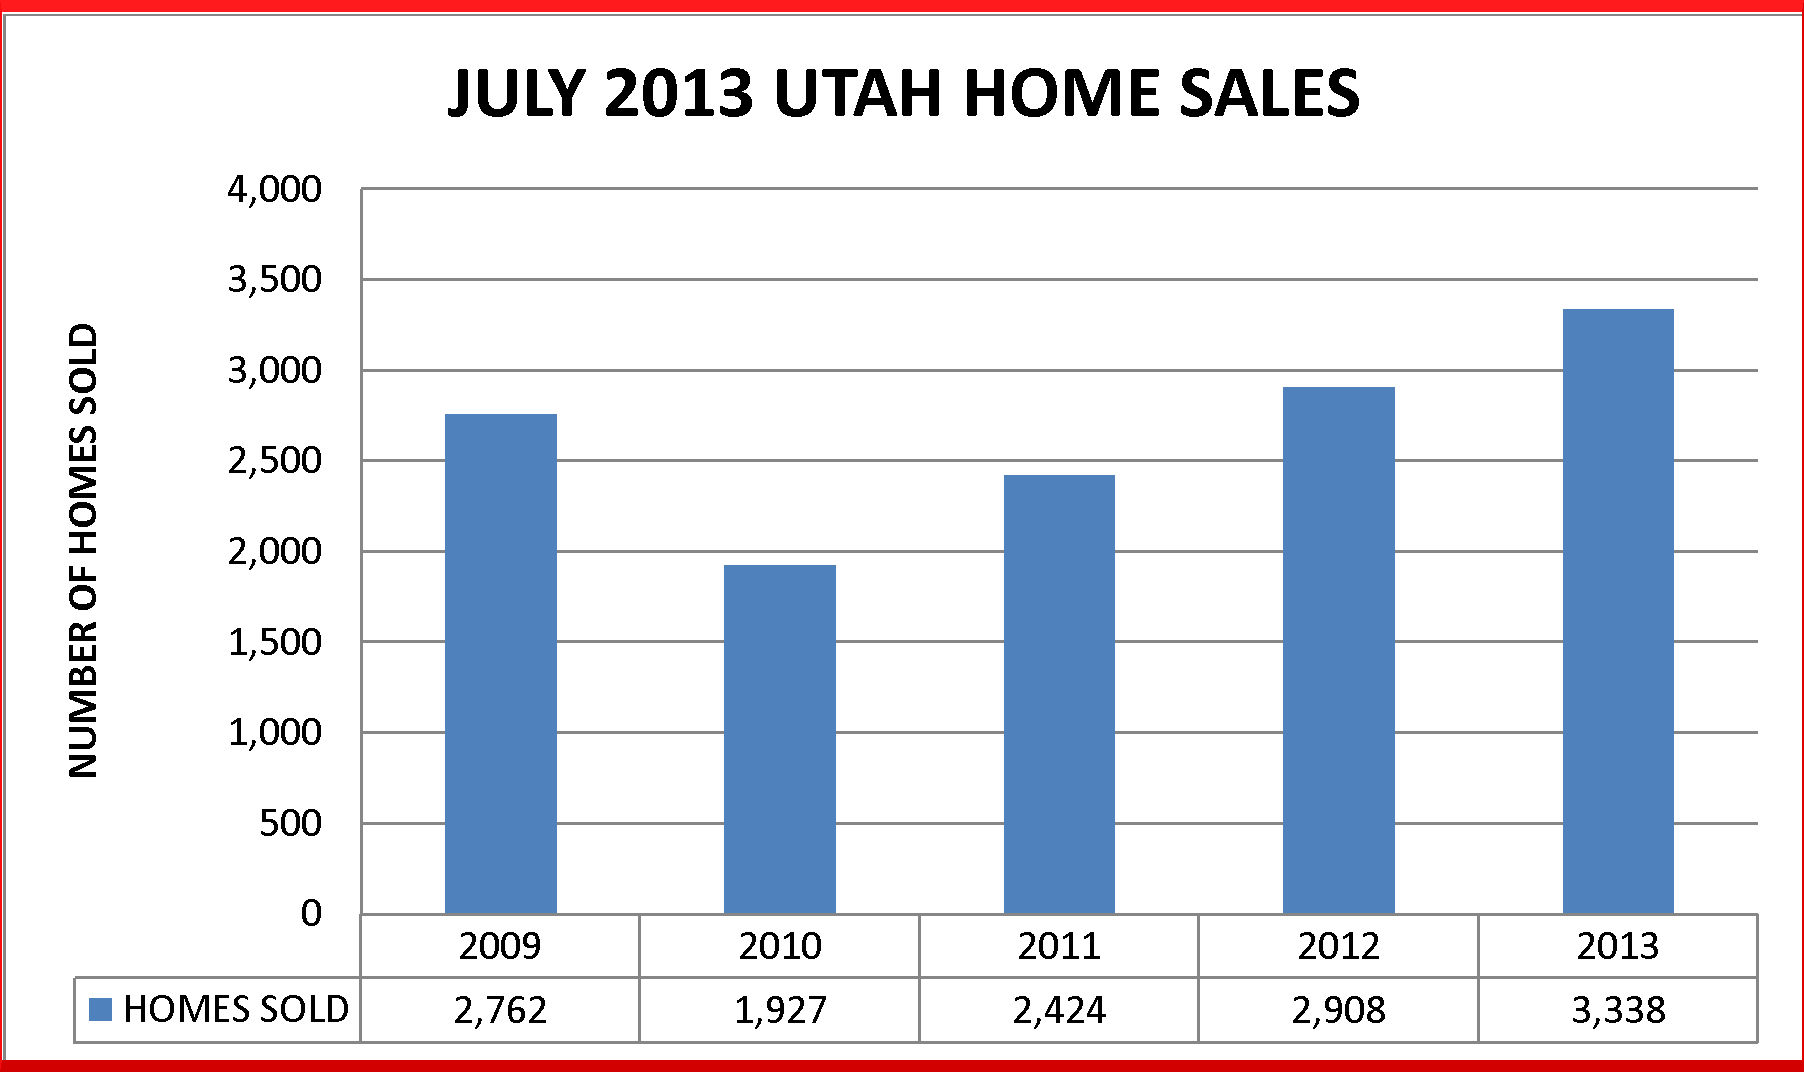 Table depicting July 2013 home sales in Utah